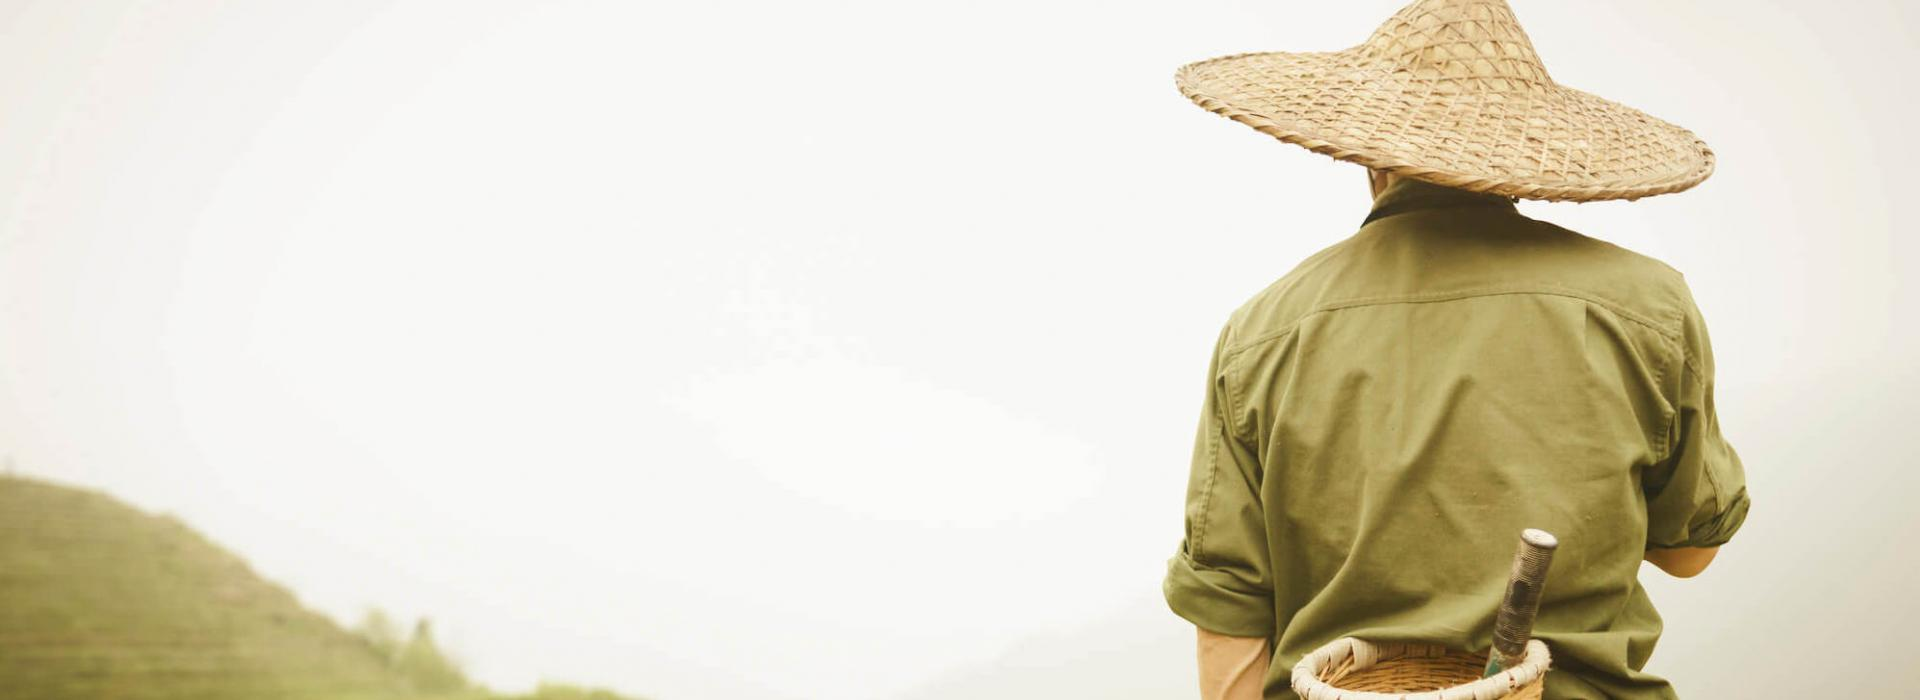 Man in a traditional hat overlooking rice paddy from up high.